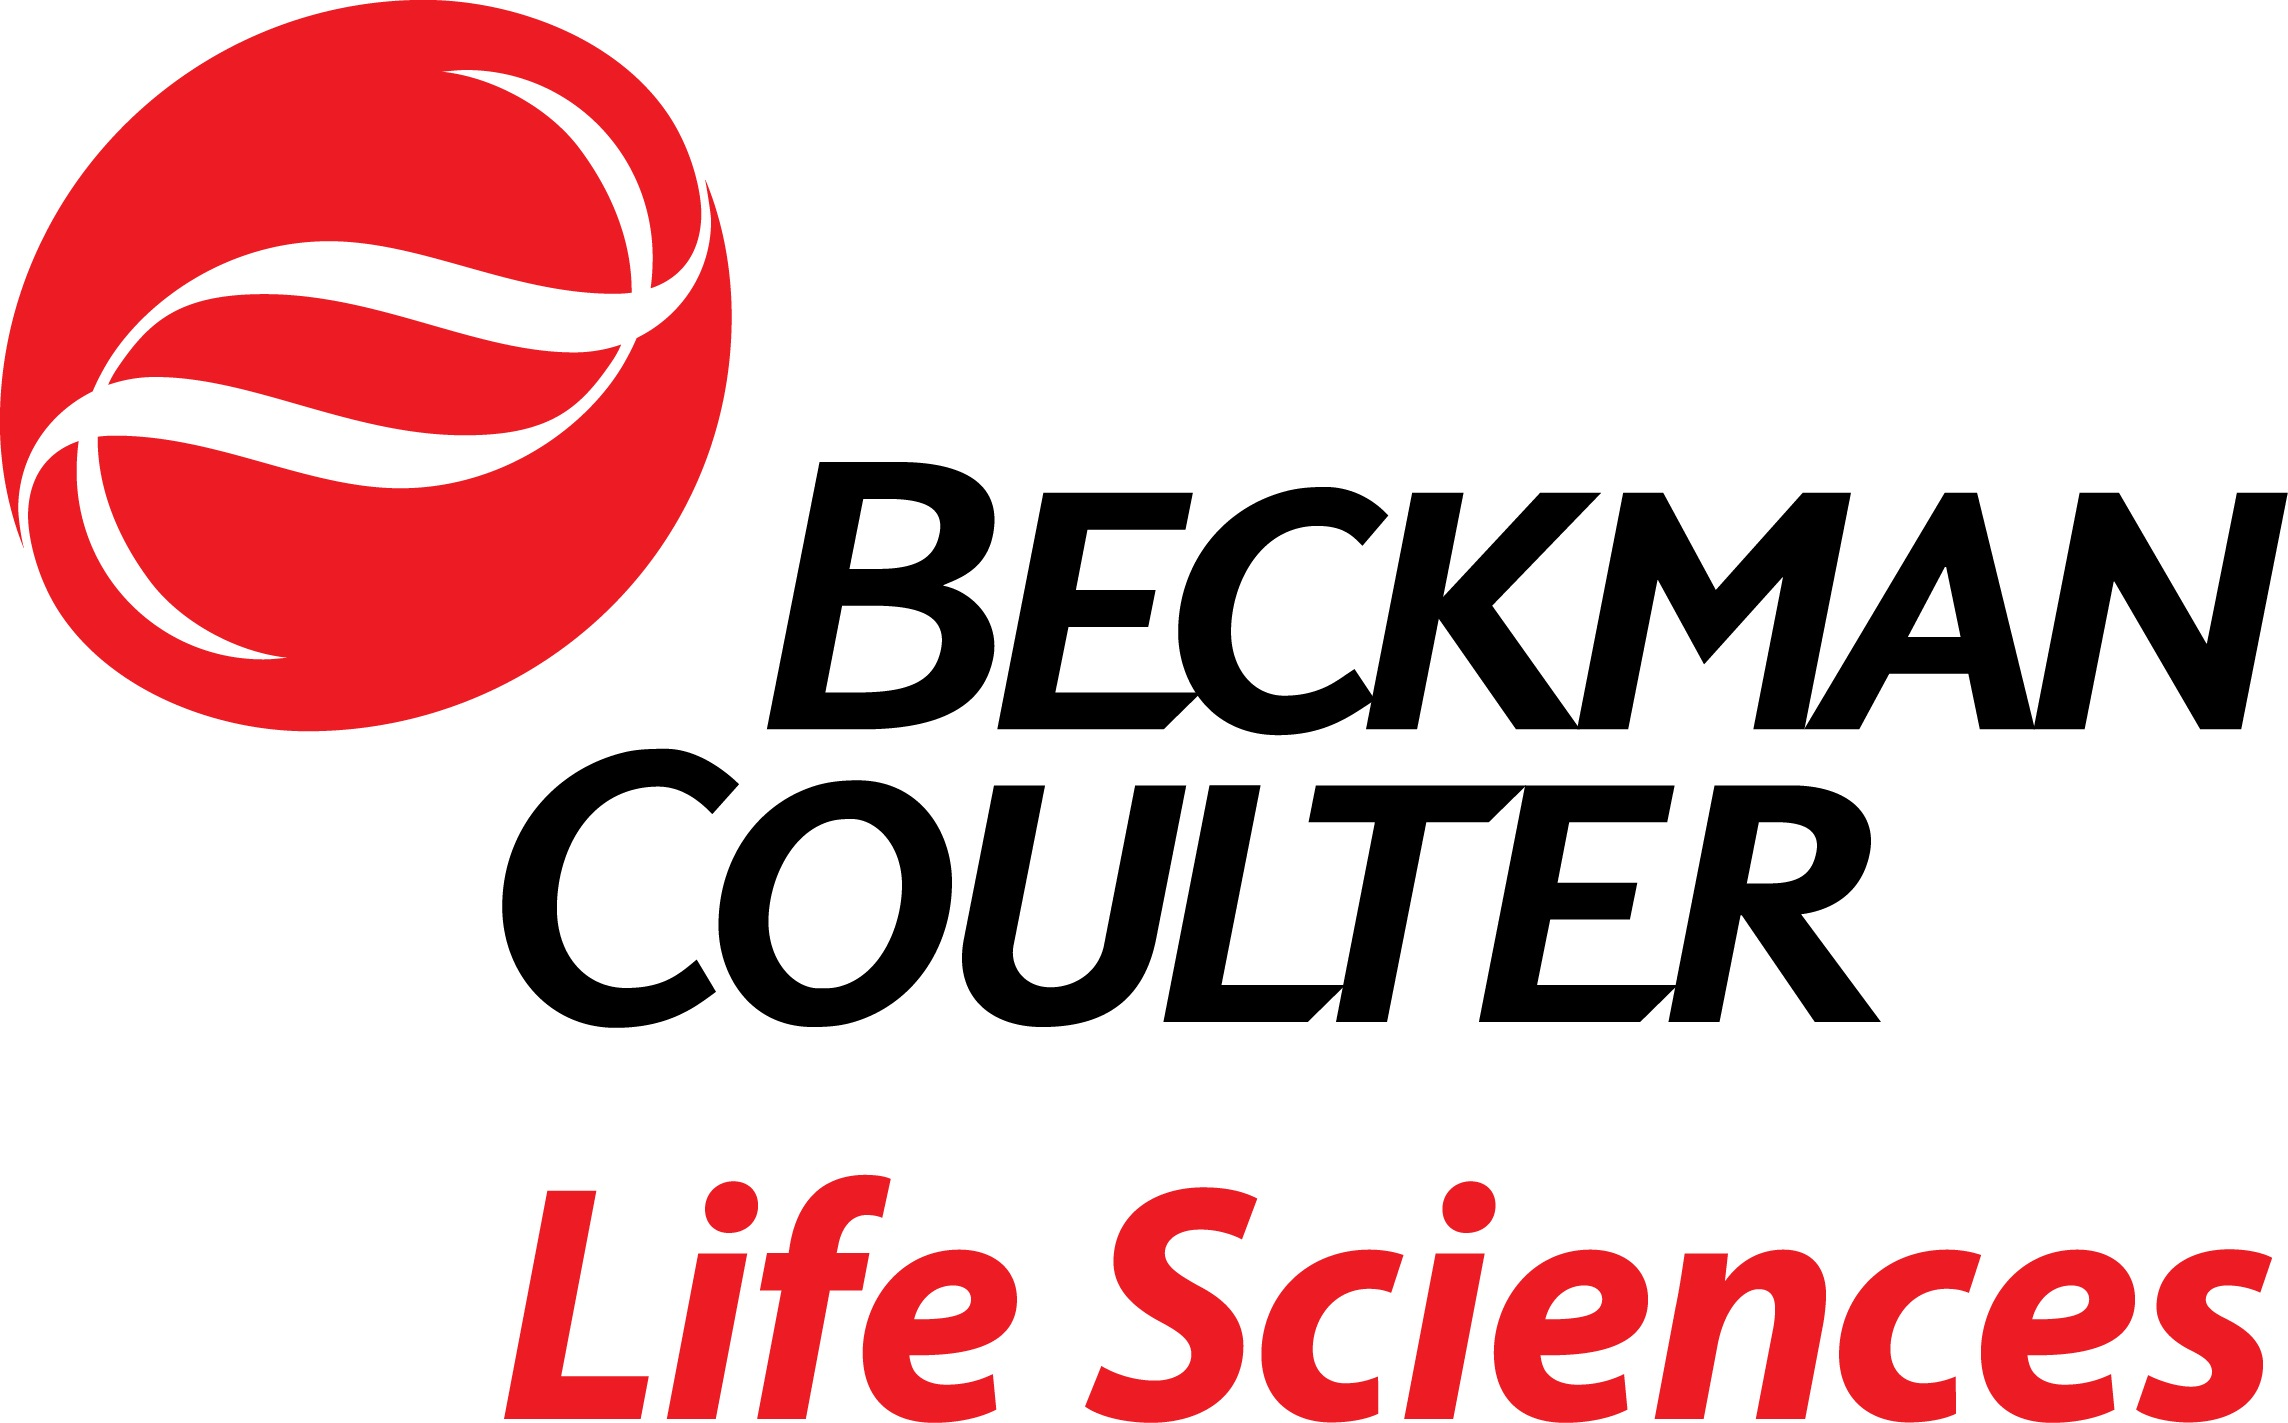 Beckman_Coulter.jpg